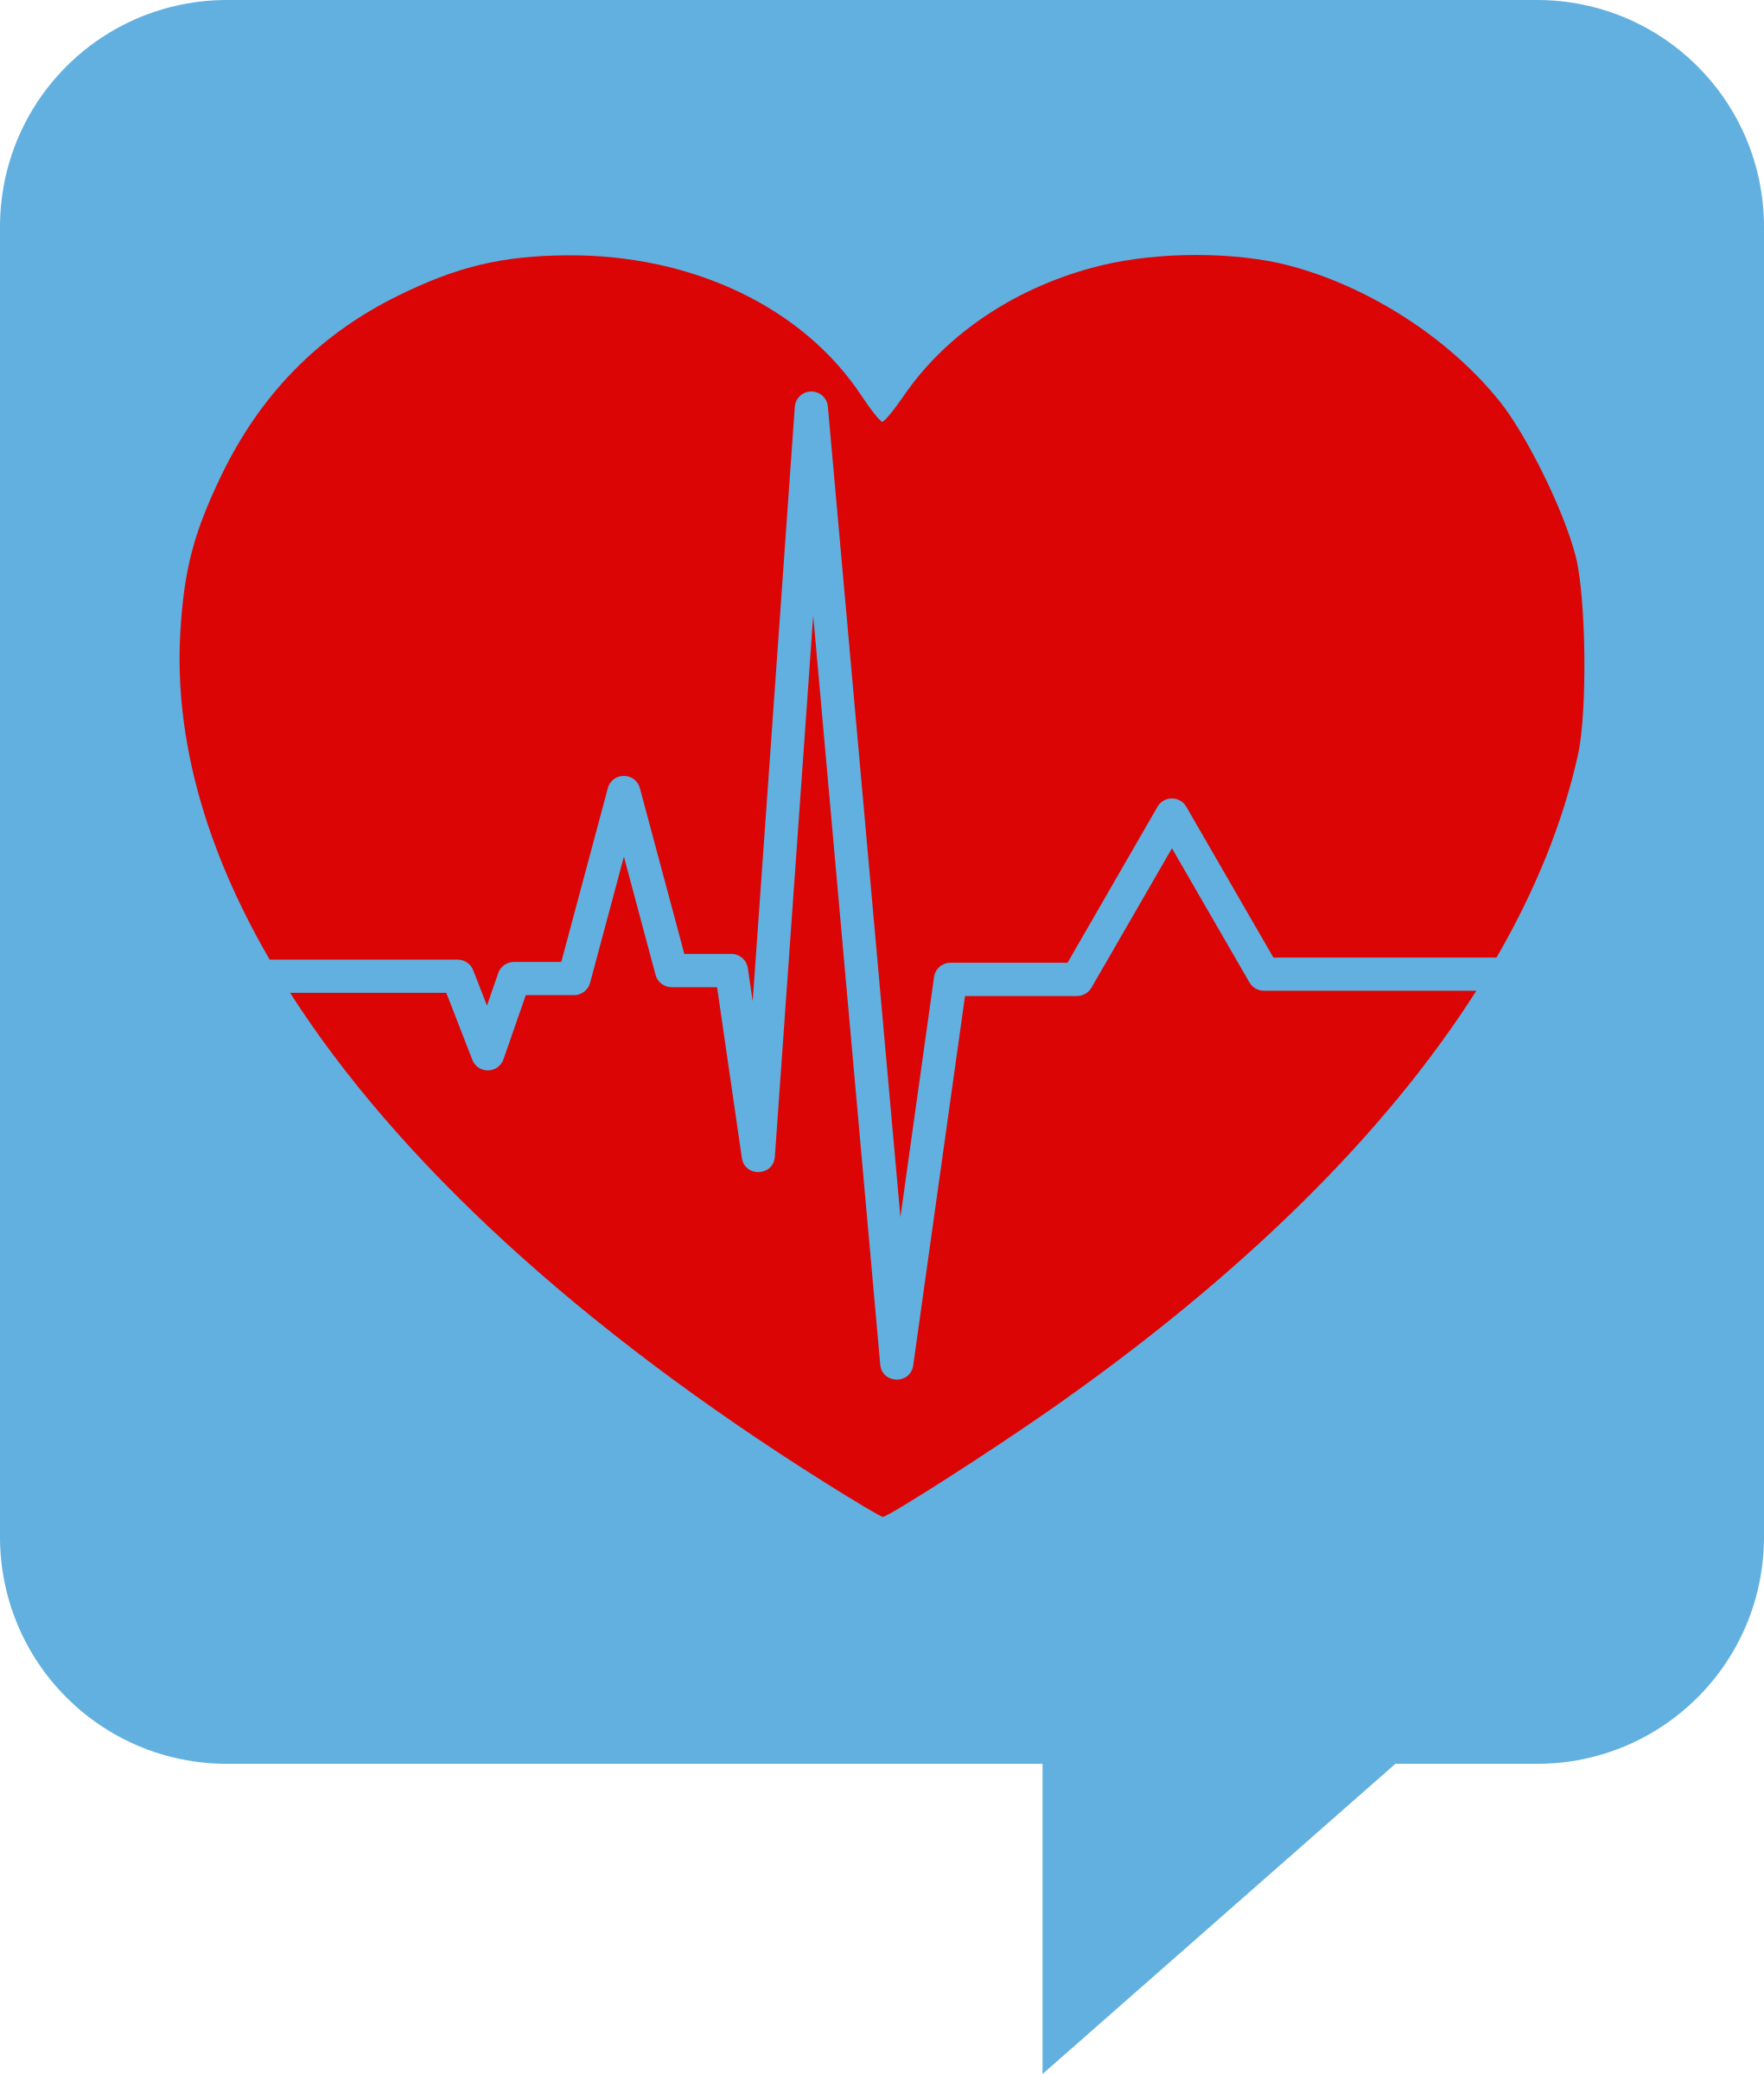 Clipart - Heartbeat Logo for Health.SE. No background. Red heart